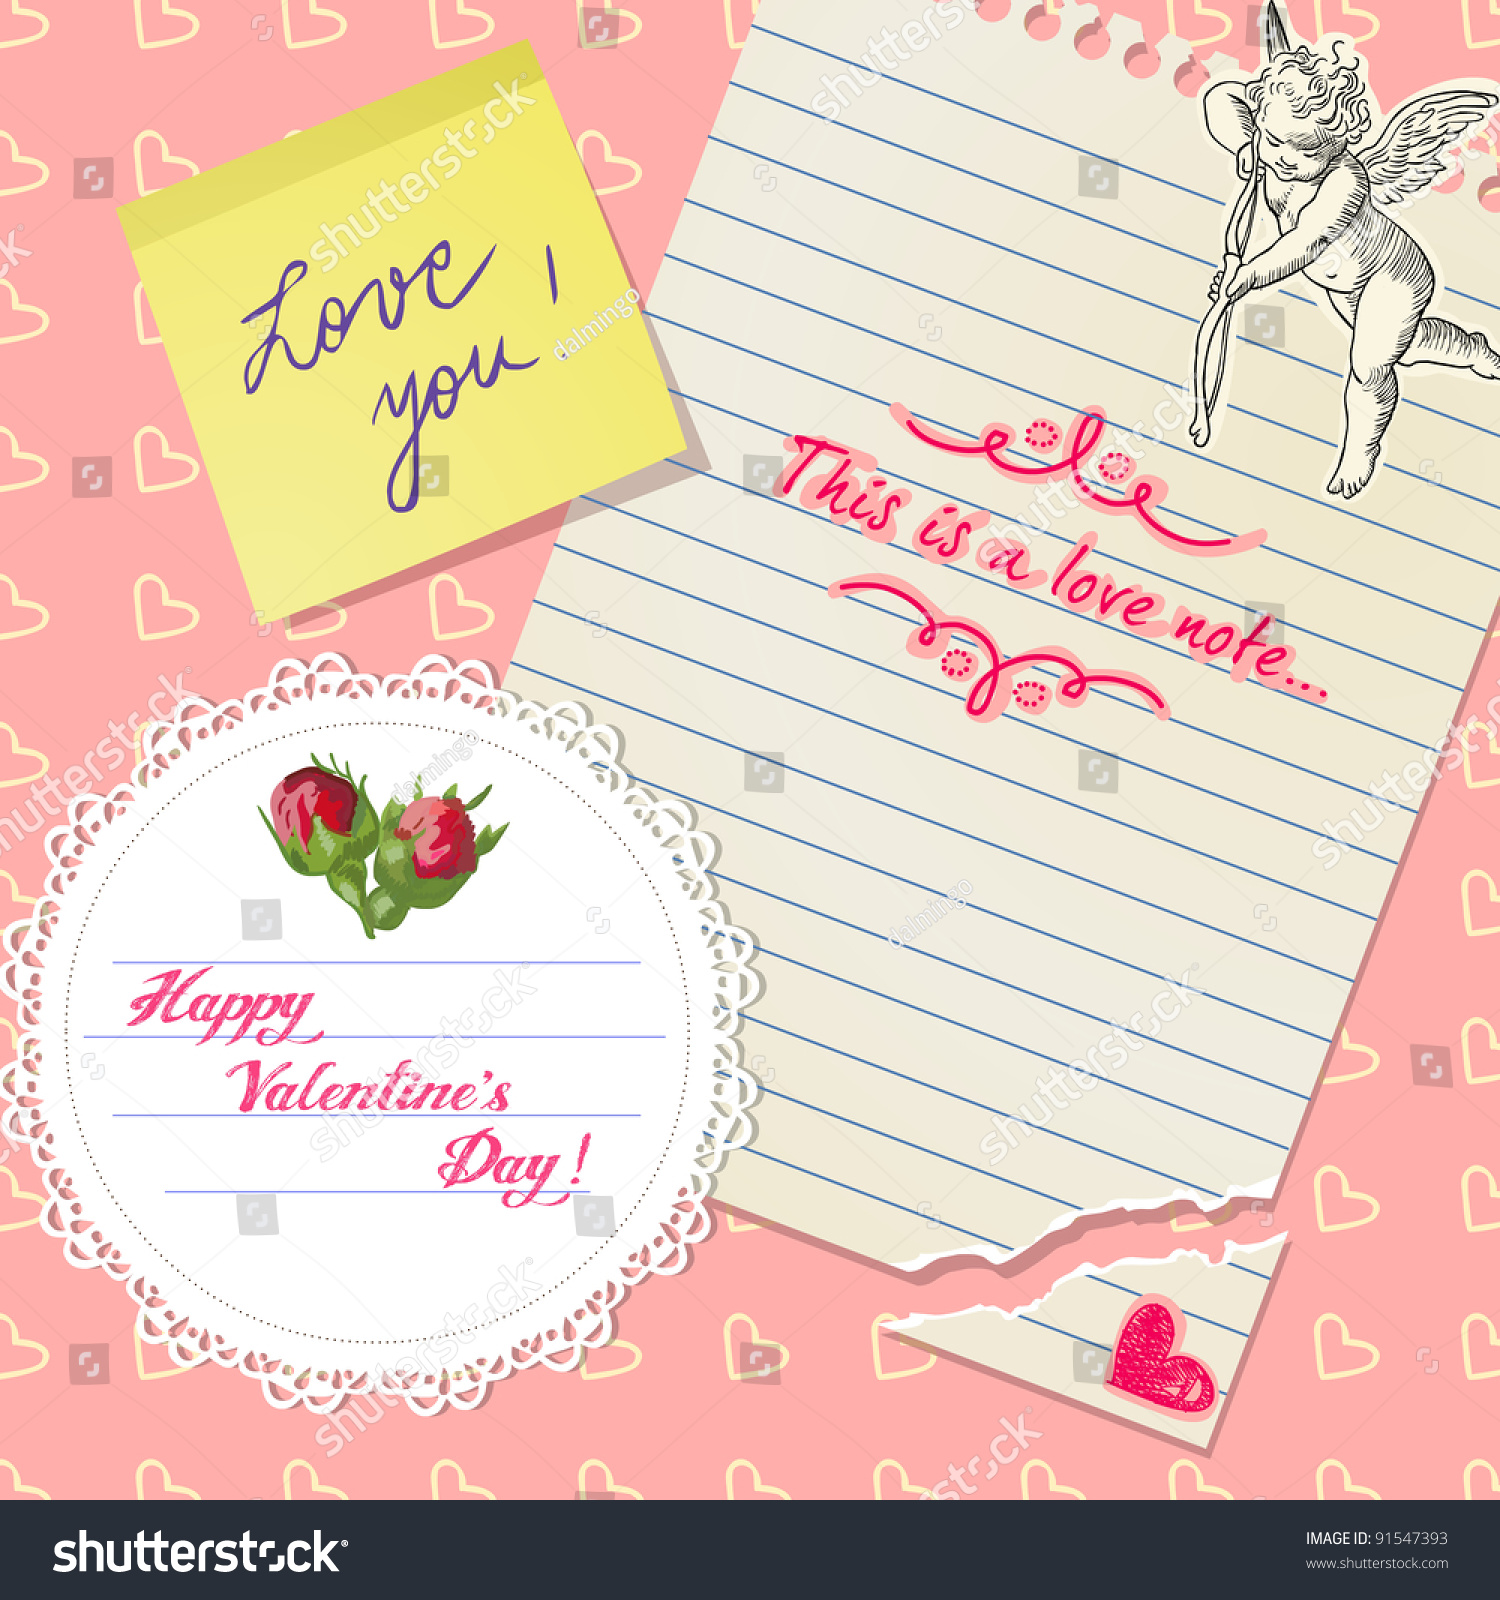 cute valentines day scrapbook with roses love notes and hearts